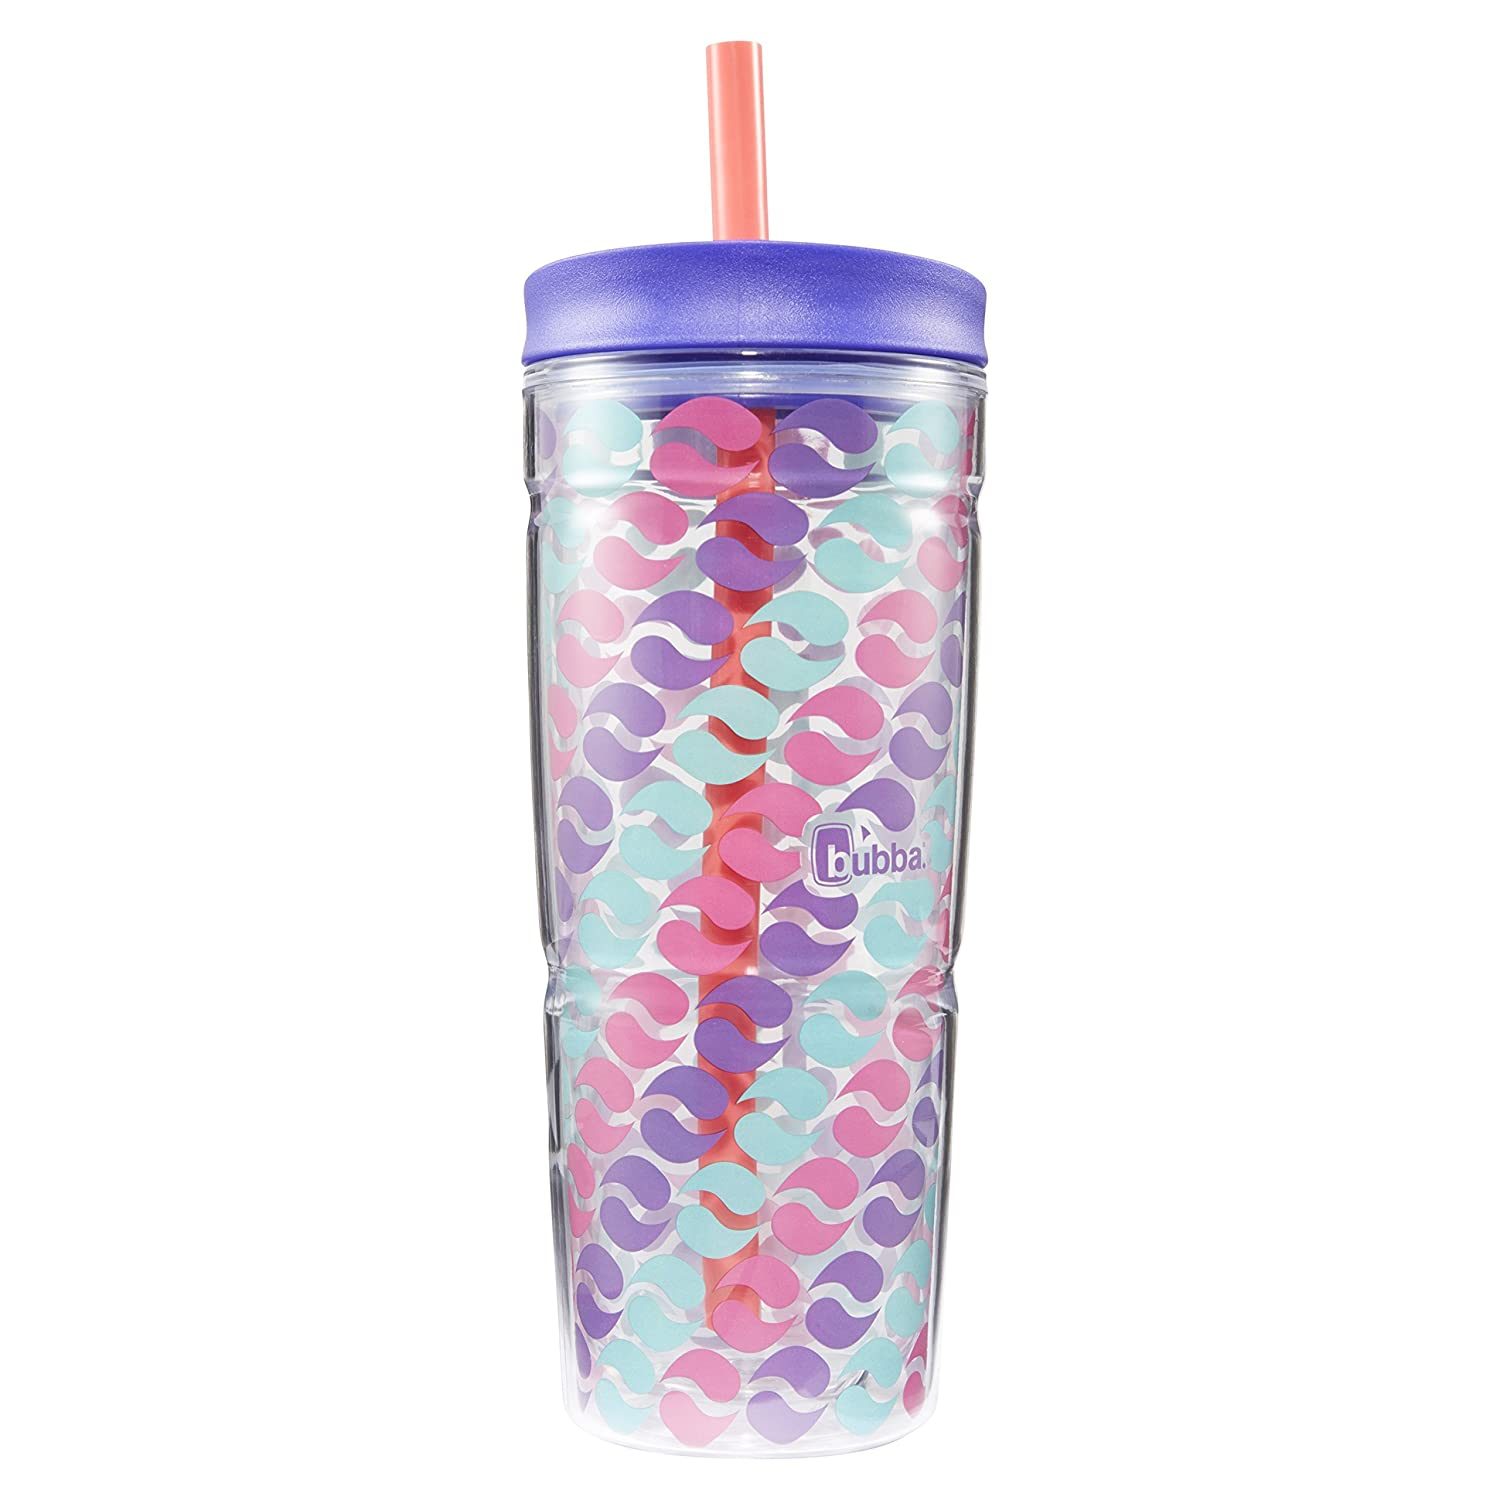 Bubba Envy Double Wall Insulated Straw Tumbler, 24 oz, Blue Triangle Graphic Bubba Brands 1965876